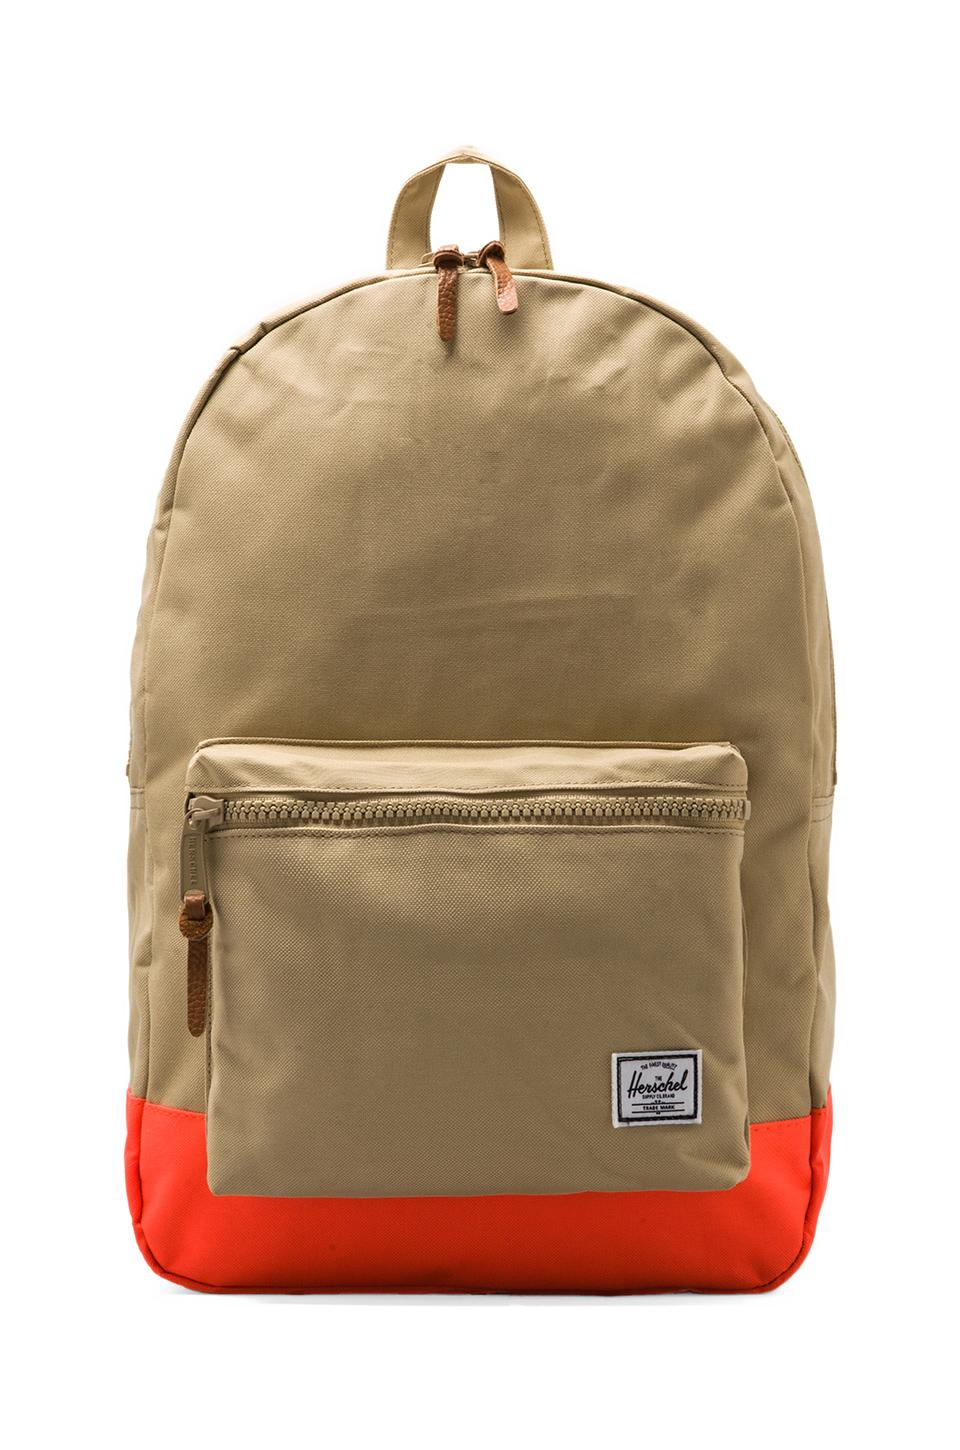 Herschel Supply Co. Weather Pack Settlement in Khaki/Neon Orange